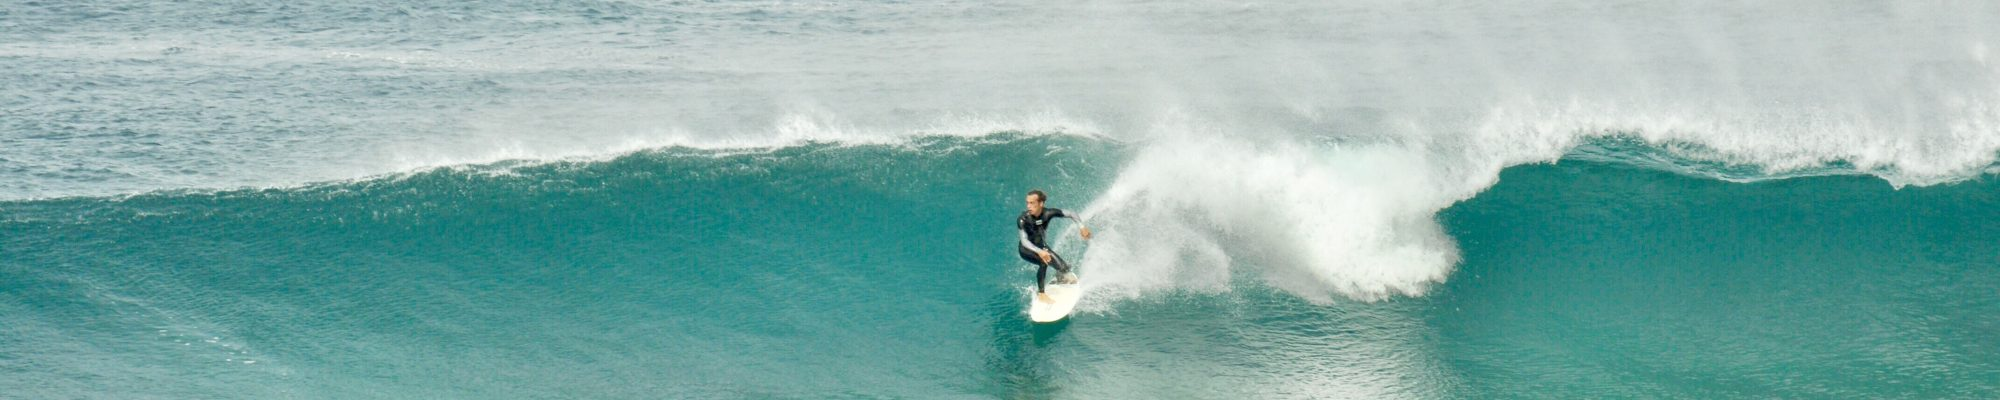 man surfing a right-hander wave